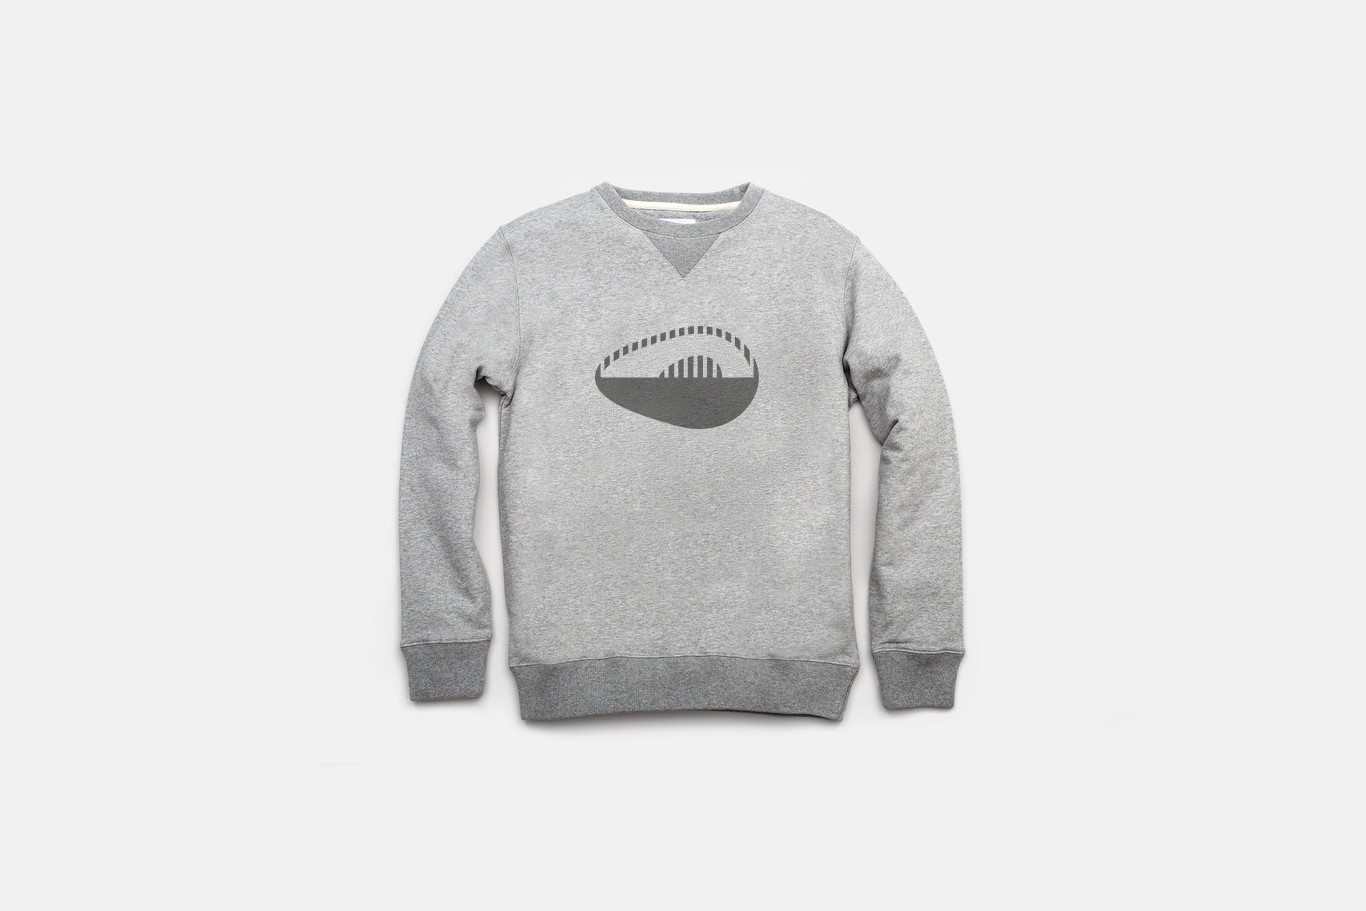 Farmhouse Sweatshirt